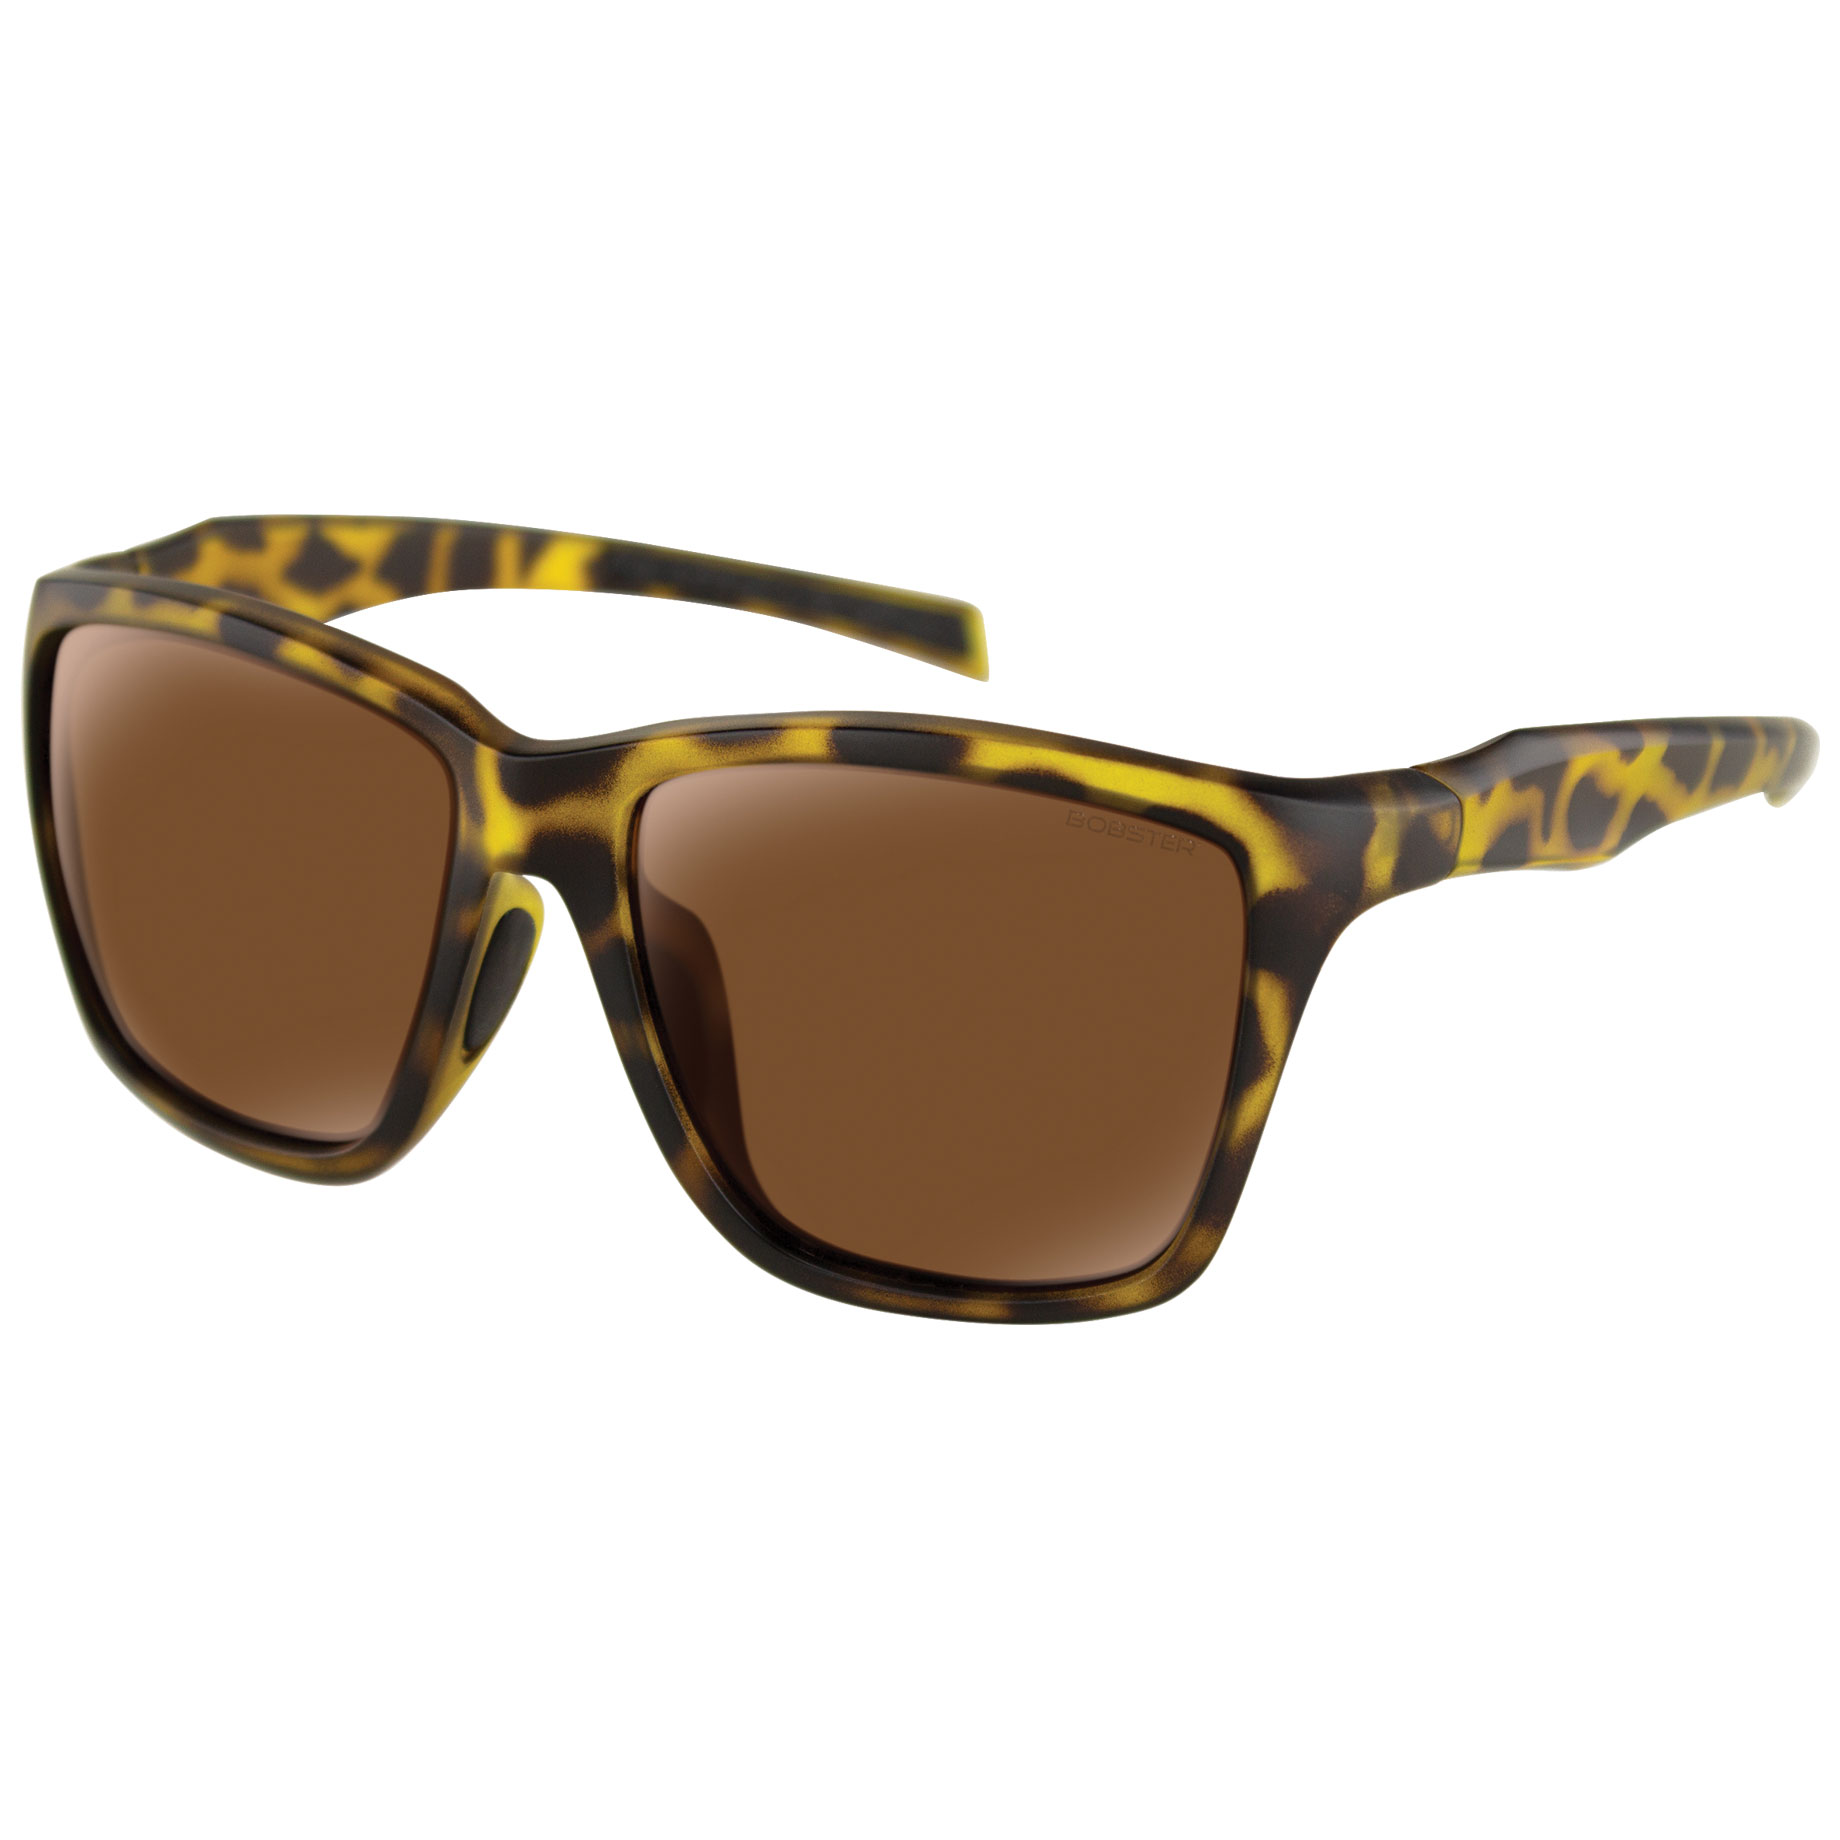 Bobster Anchor Tortoise Sunglasses with Brown Lens